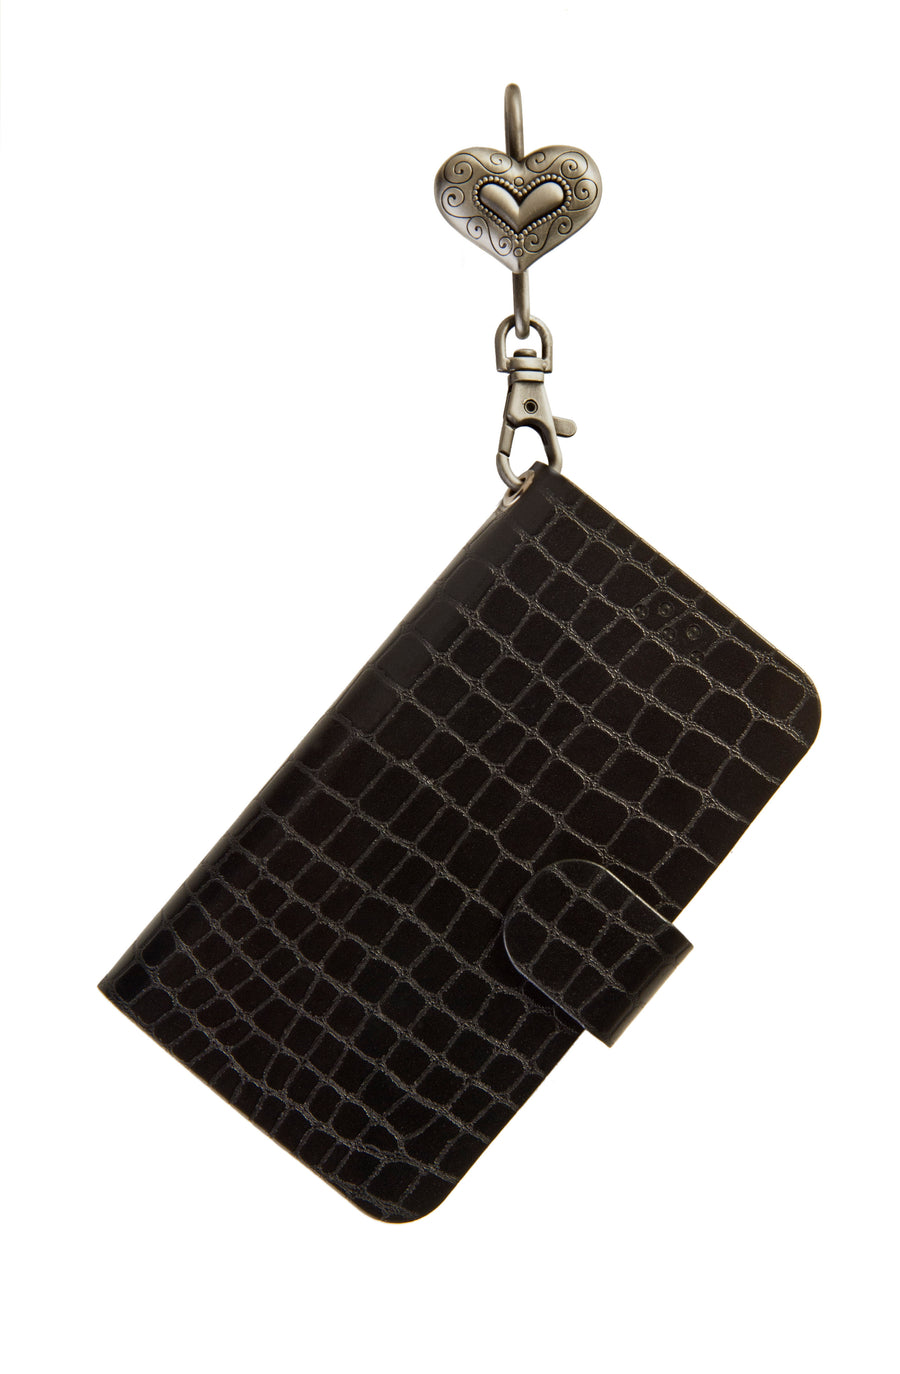 Black Phone Key'Purse Diary Case with Heritage Heart